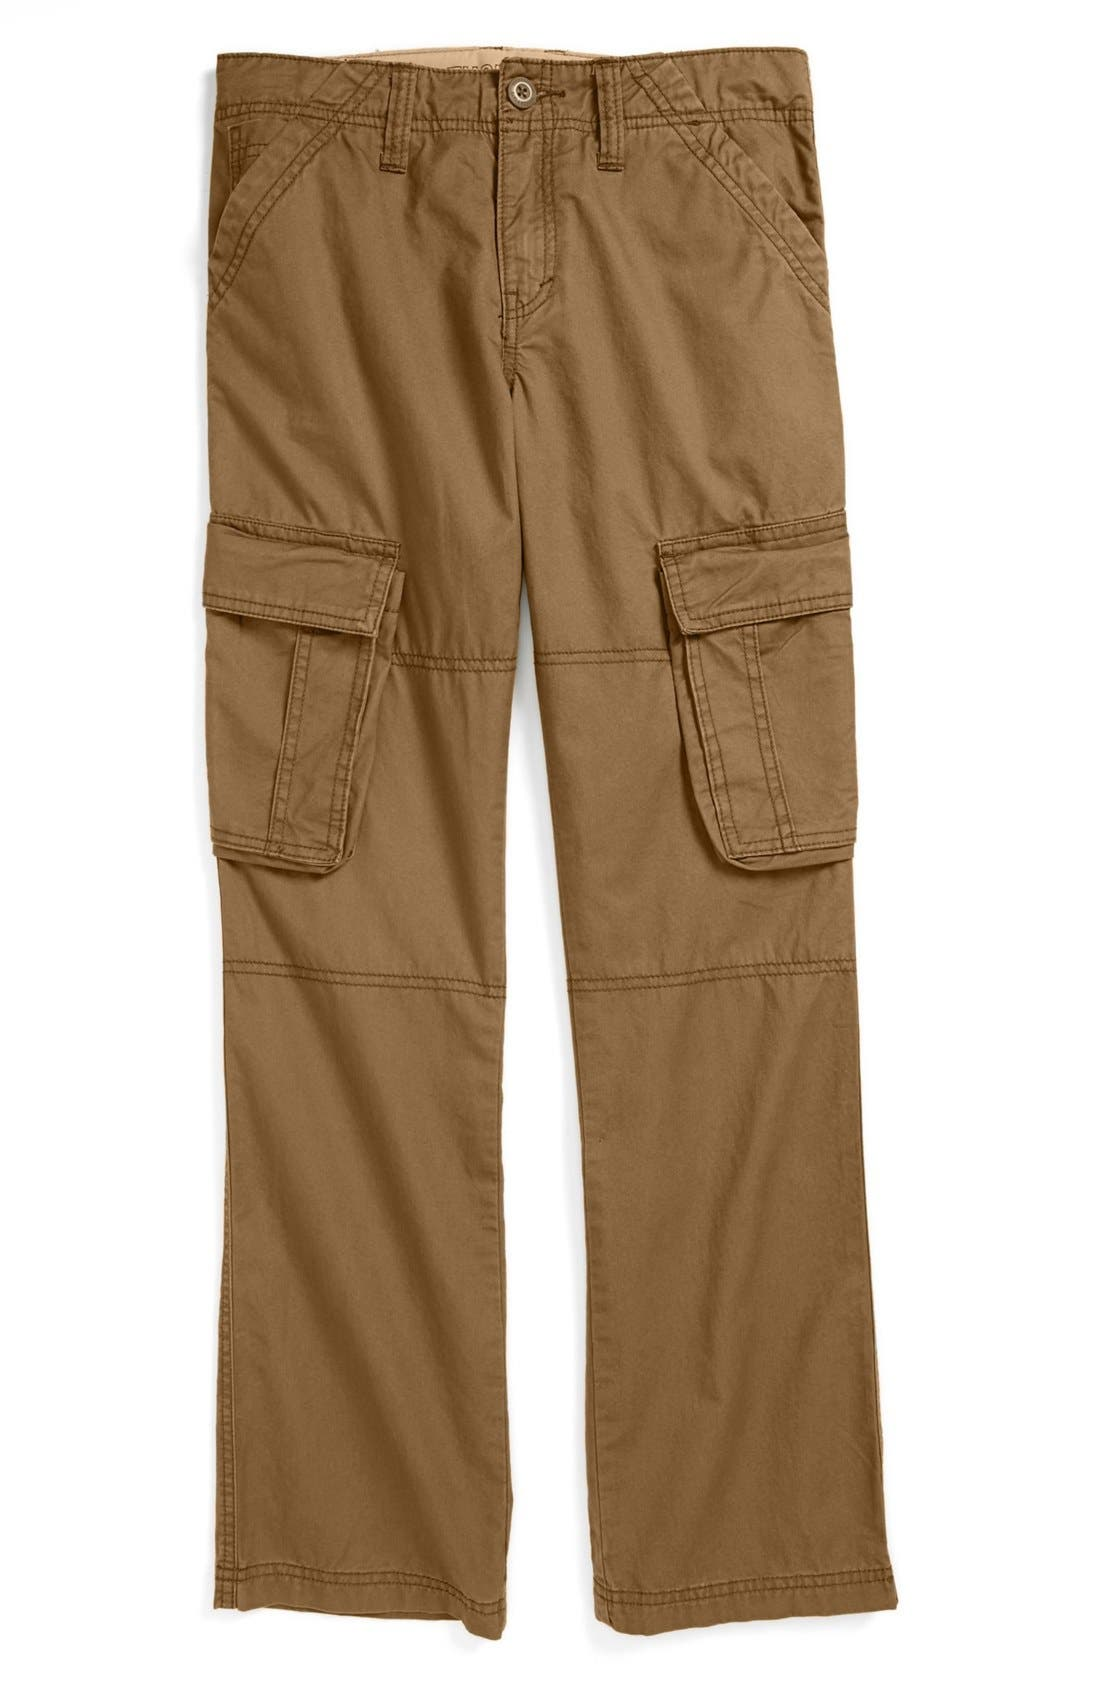 Alternate Image 1 Selected - Tucker + Tate 'Cargo' Pants (Toddler Boys & Little Boys)